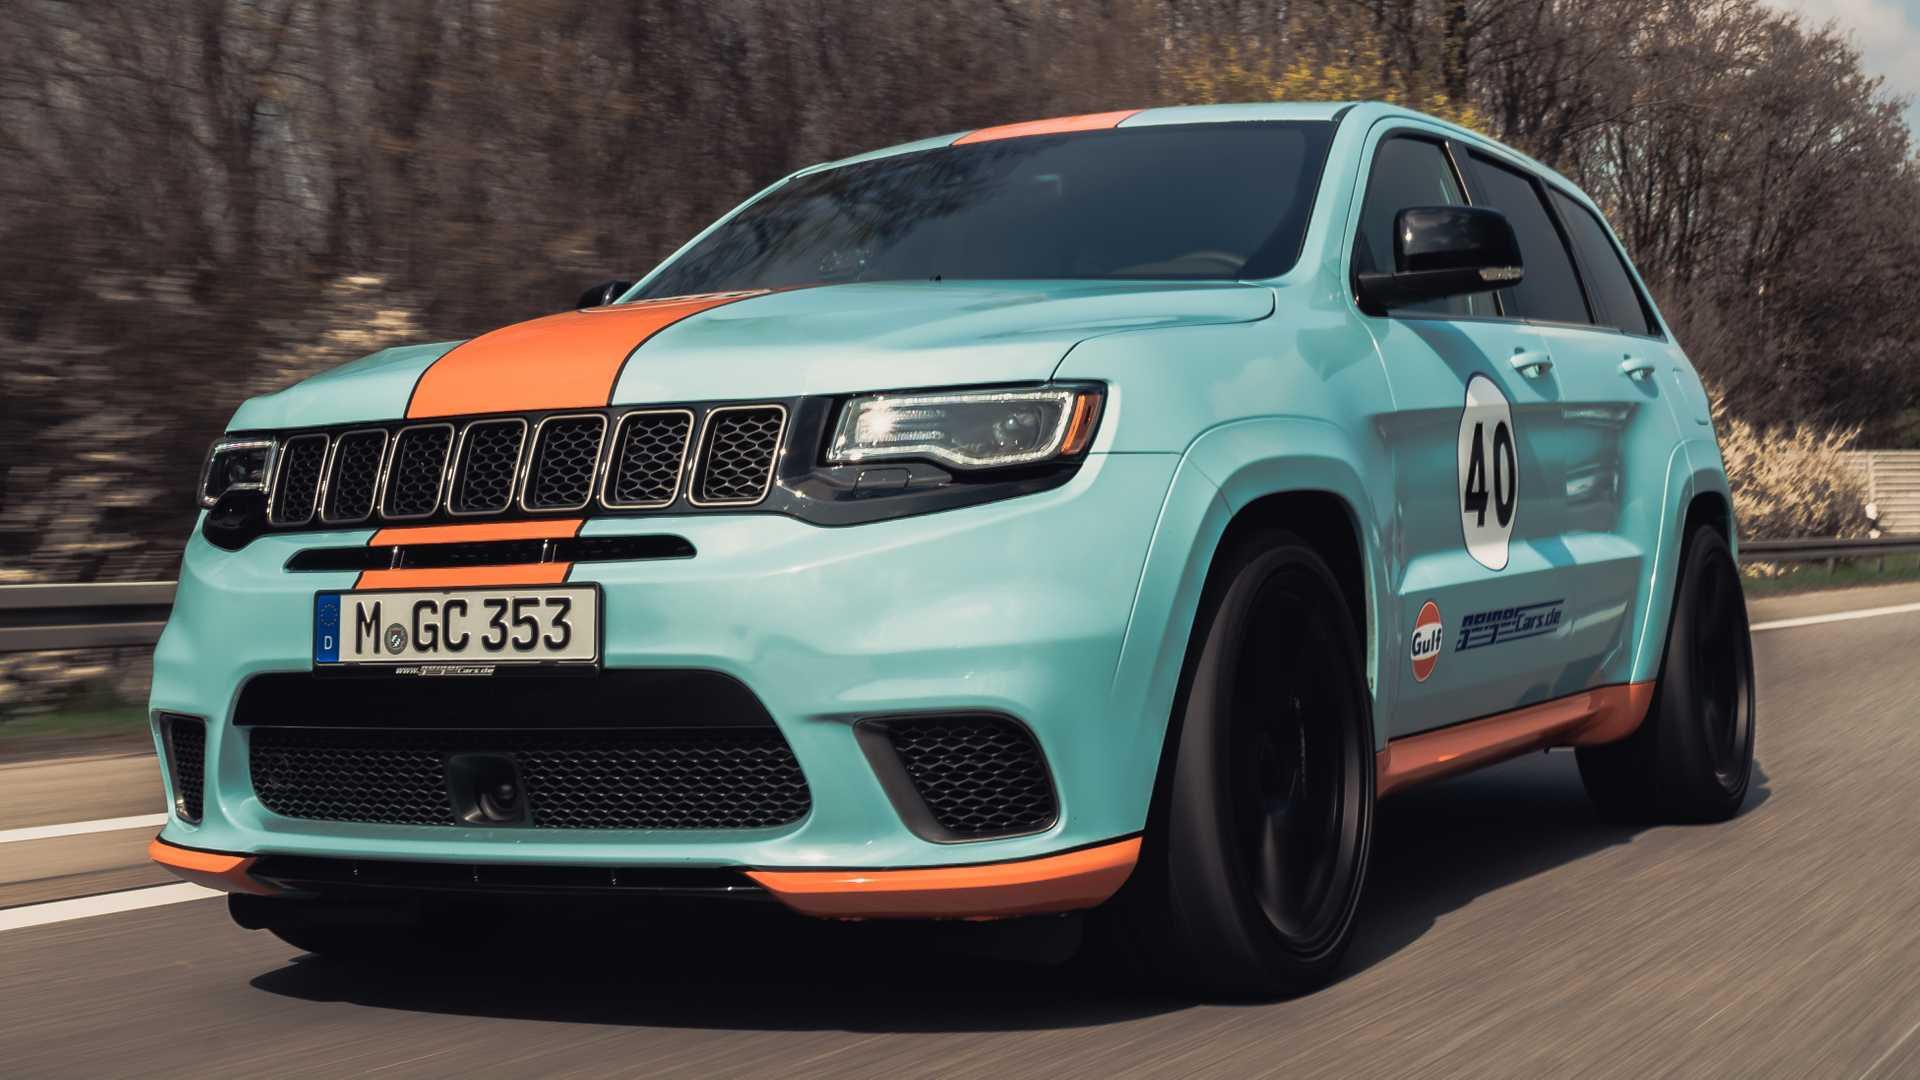 jeep-grand-cherokee-trackhawk-gulf-a-900-chevaux-by-geigercars-1089-1.jpg